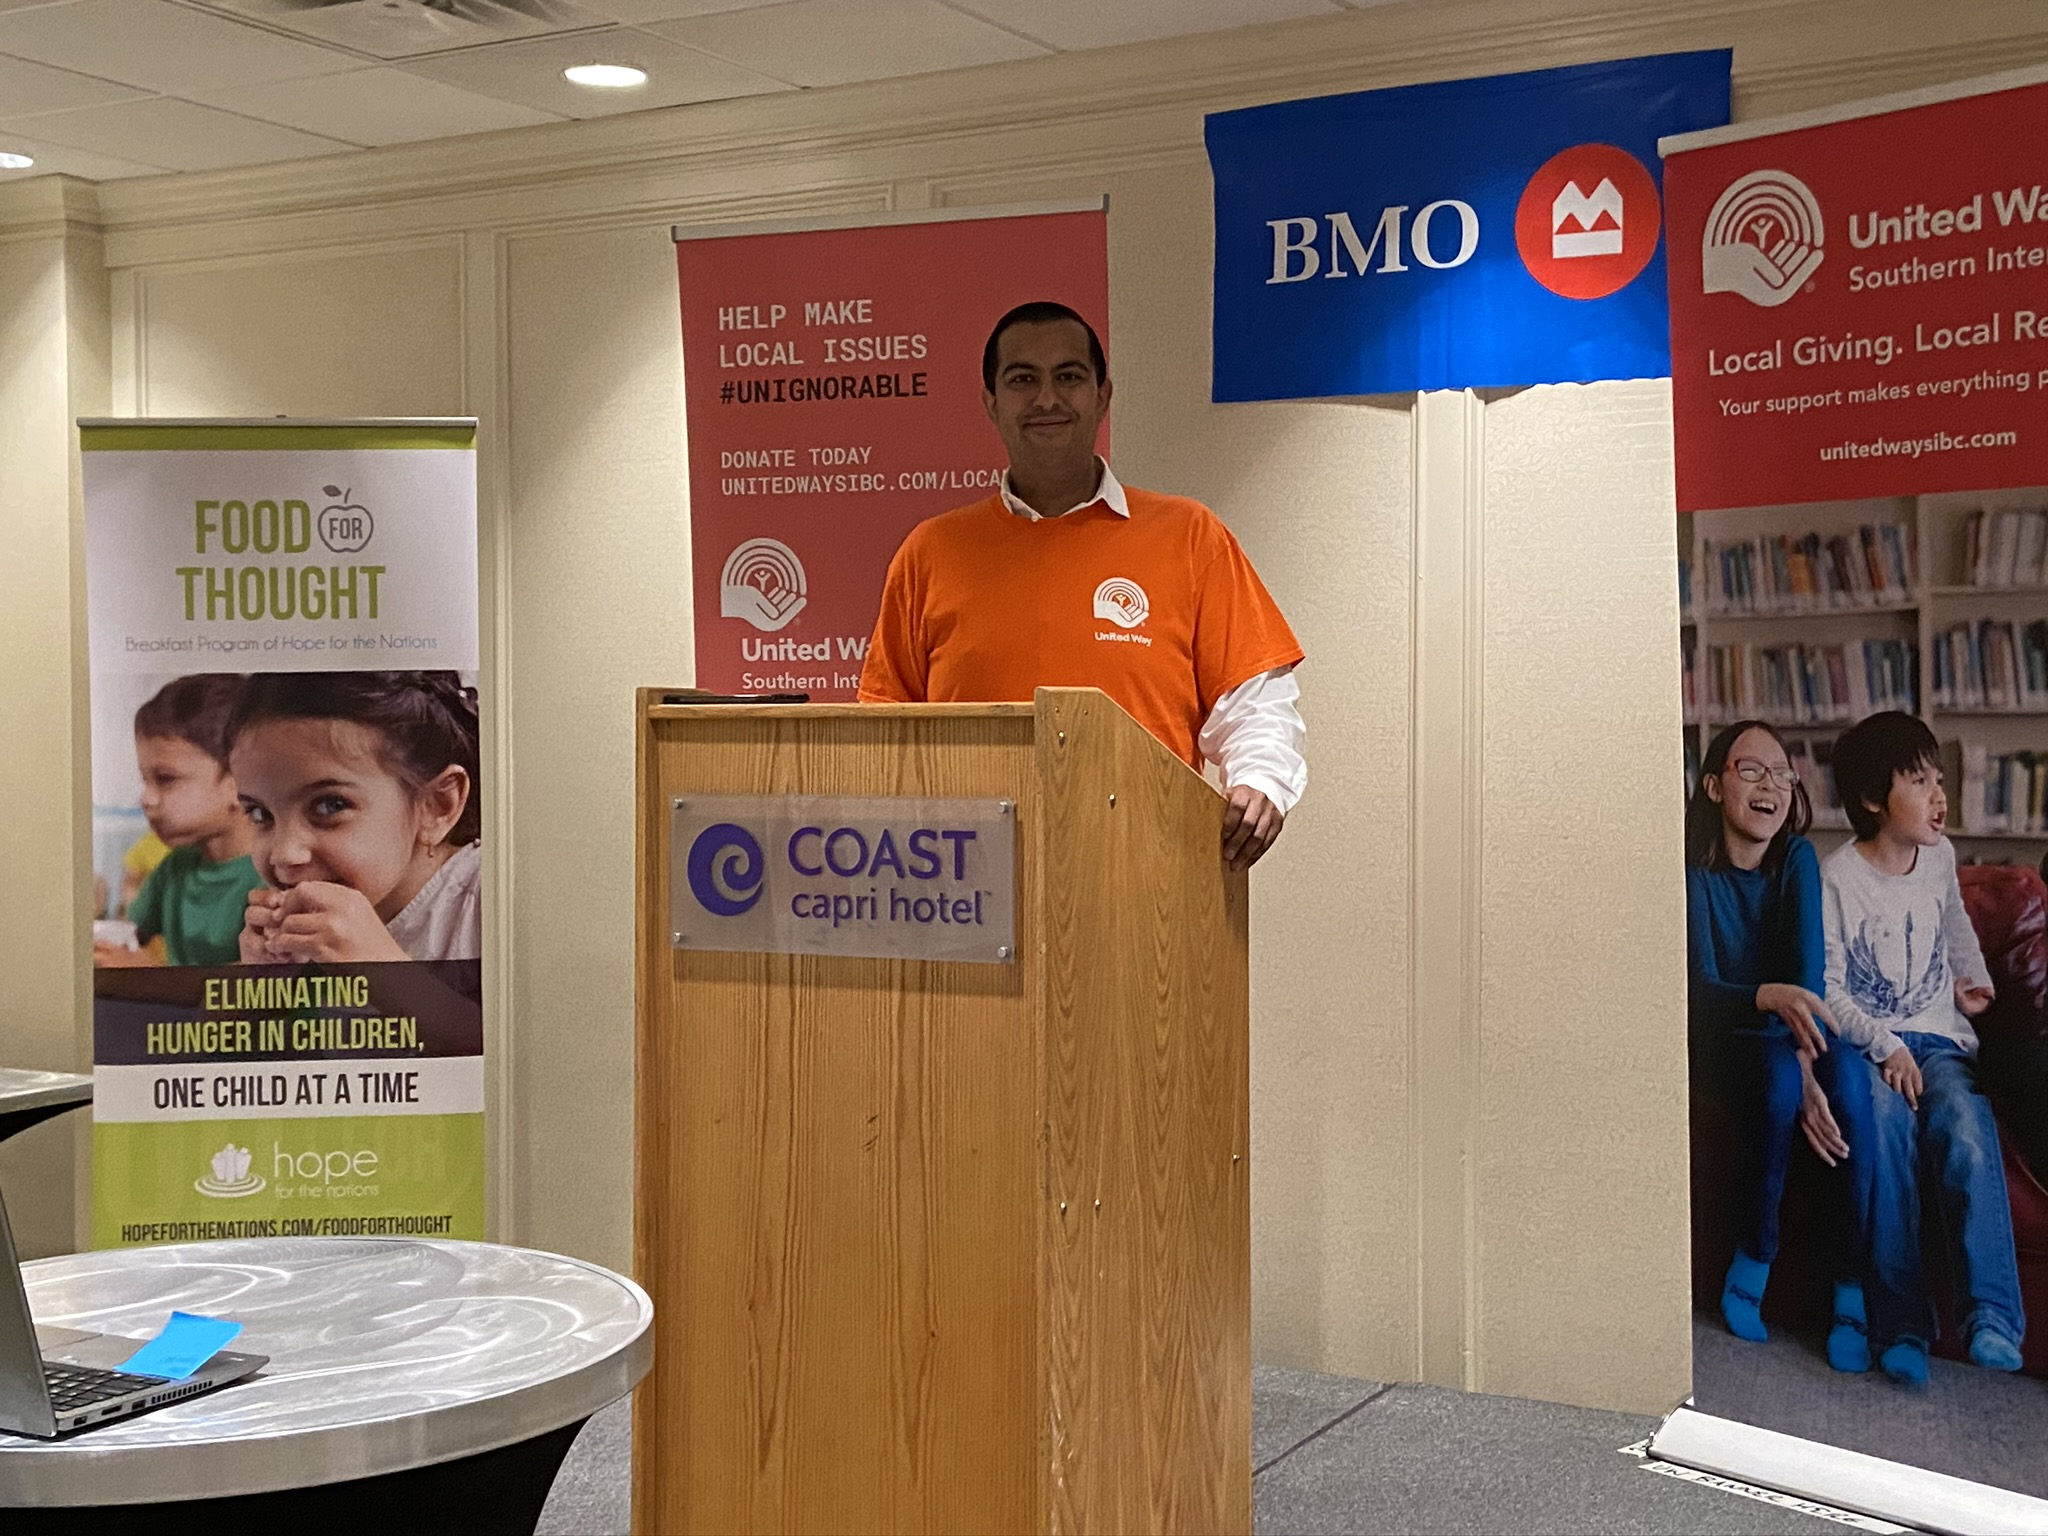 Kahir Lalji stands at a Coast Capri Hotel podium in front of banners for Food for Thought, Help Make Local Issues Unignorable, BMO, and United Way SIBC.